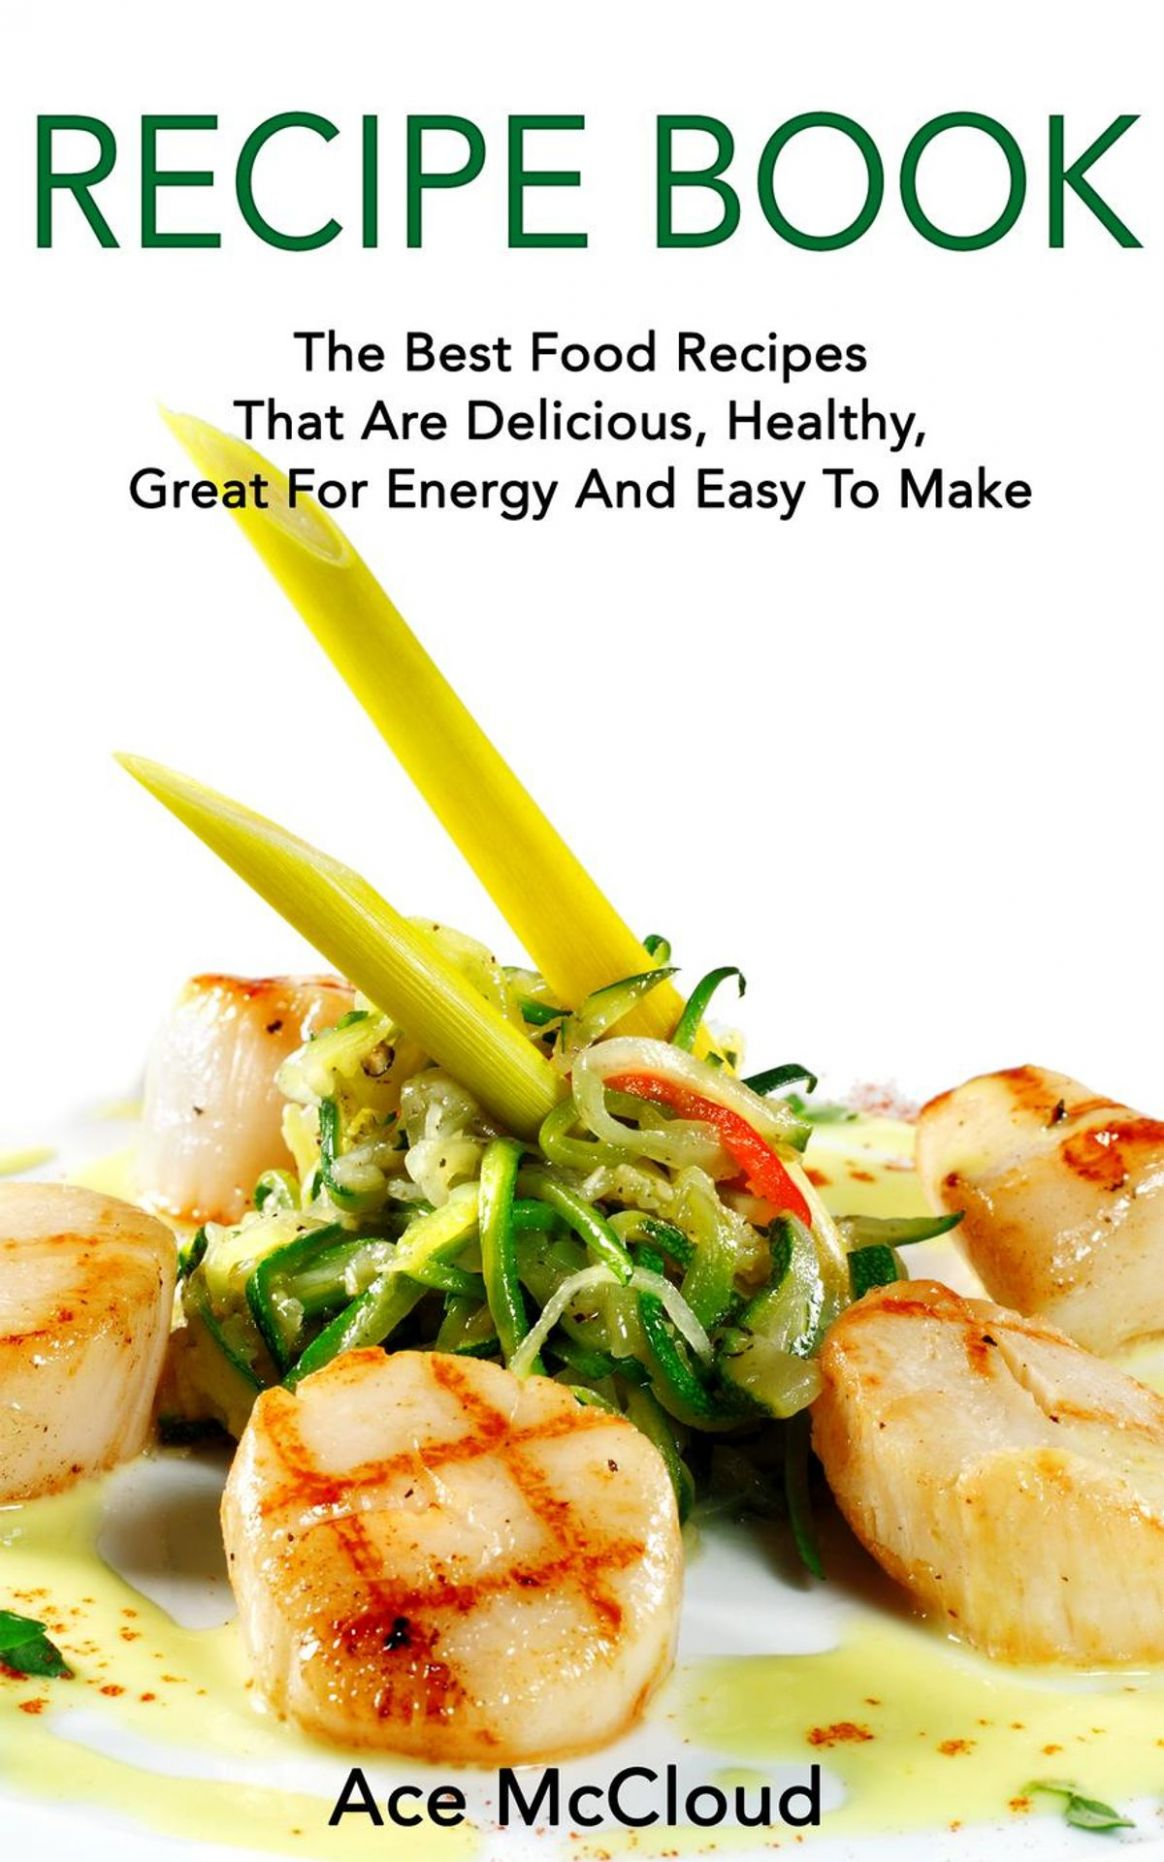 Recipe Book: The Best Food Recipes That Are Delicious, Healthy, Great For  Energy And Easy To Make ebook by Ace McCloud - Rakuten Kobo